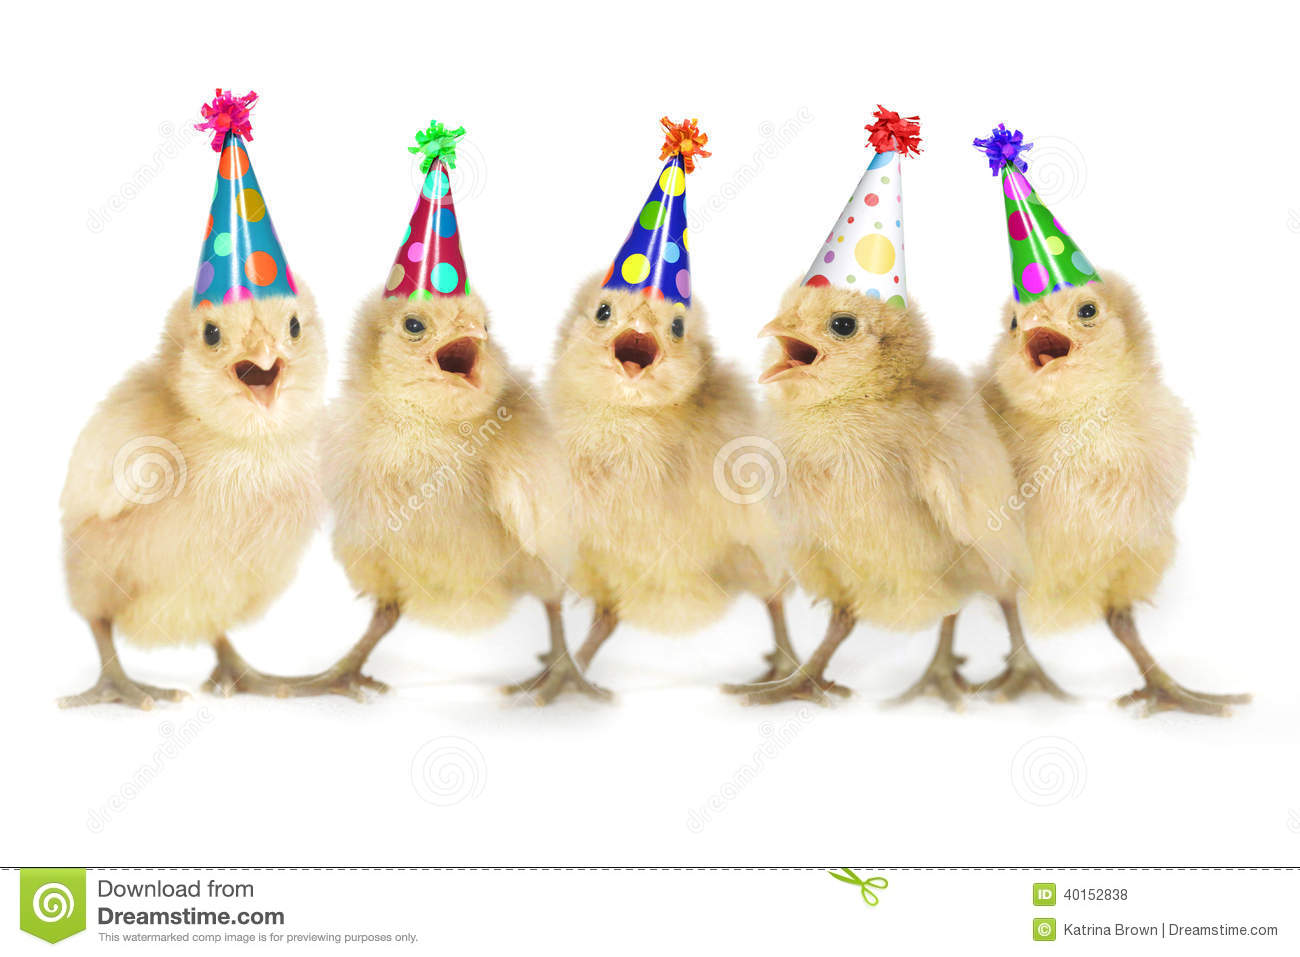 happy birthday chicken images ; yellow-baby-chicks-singing-happy-birthday-lined-up-40152838